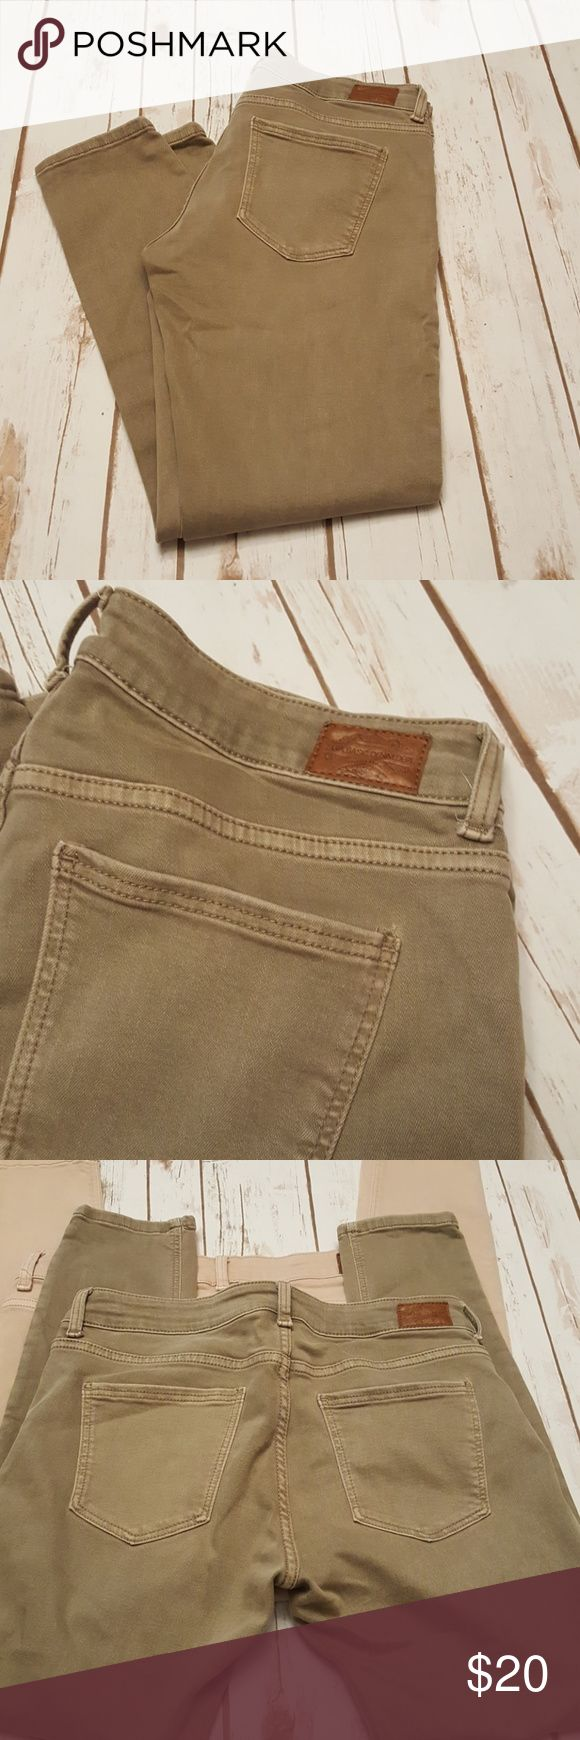 Sara Basic Tan Jeans Stretchy Short Ankle Style 25 inch inseam  Grayish tan color Good condition Zara Jeans Ankle & Cropped